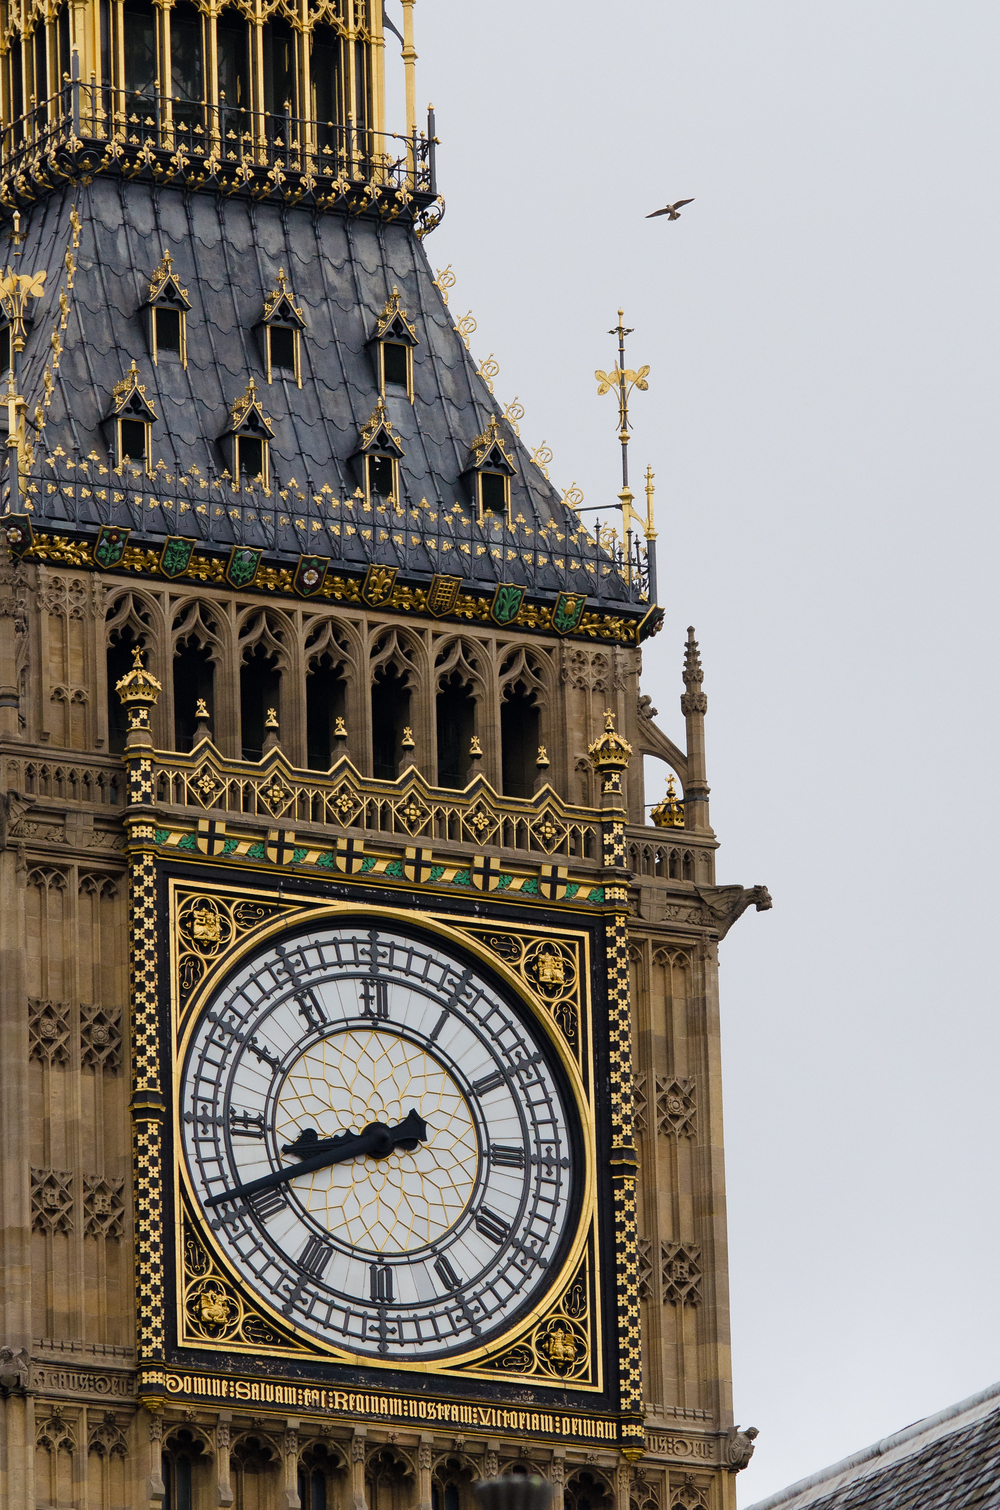 A peregrine falcon flying above Big Ben.